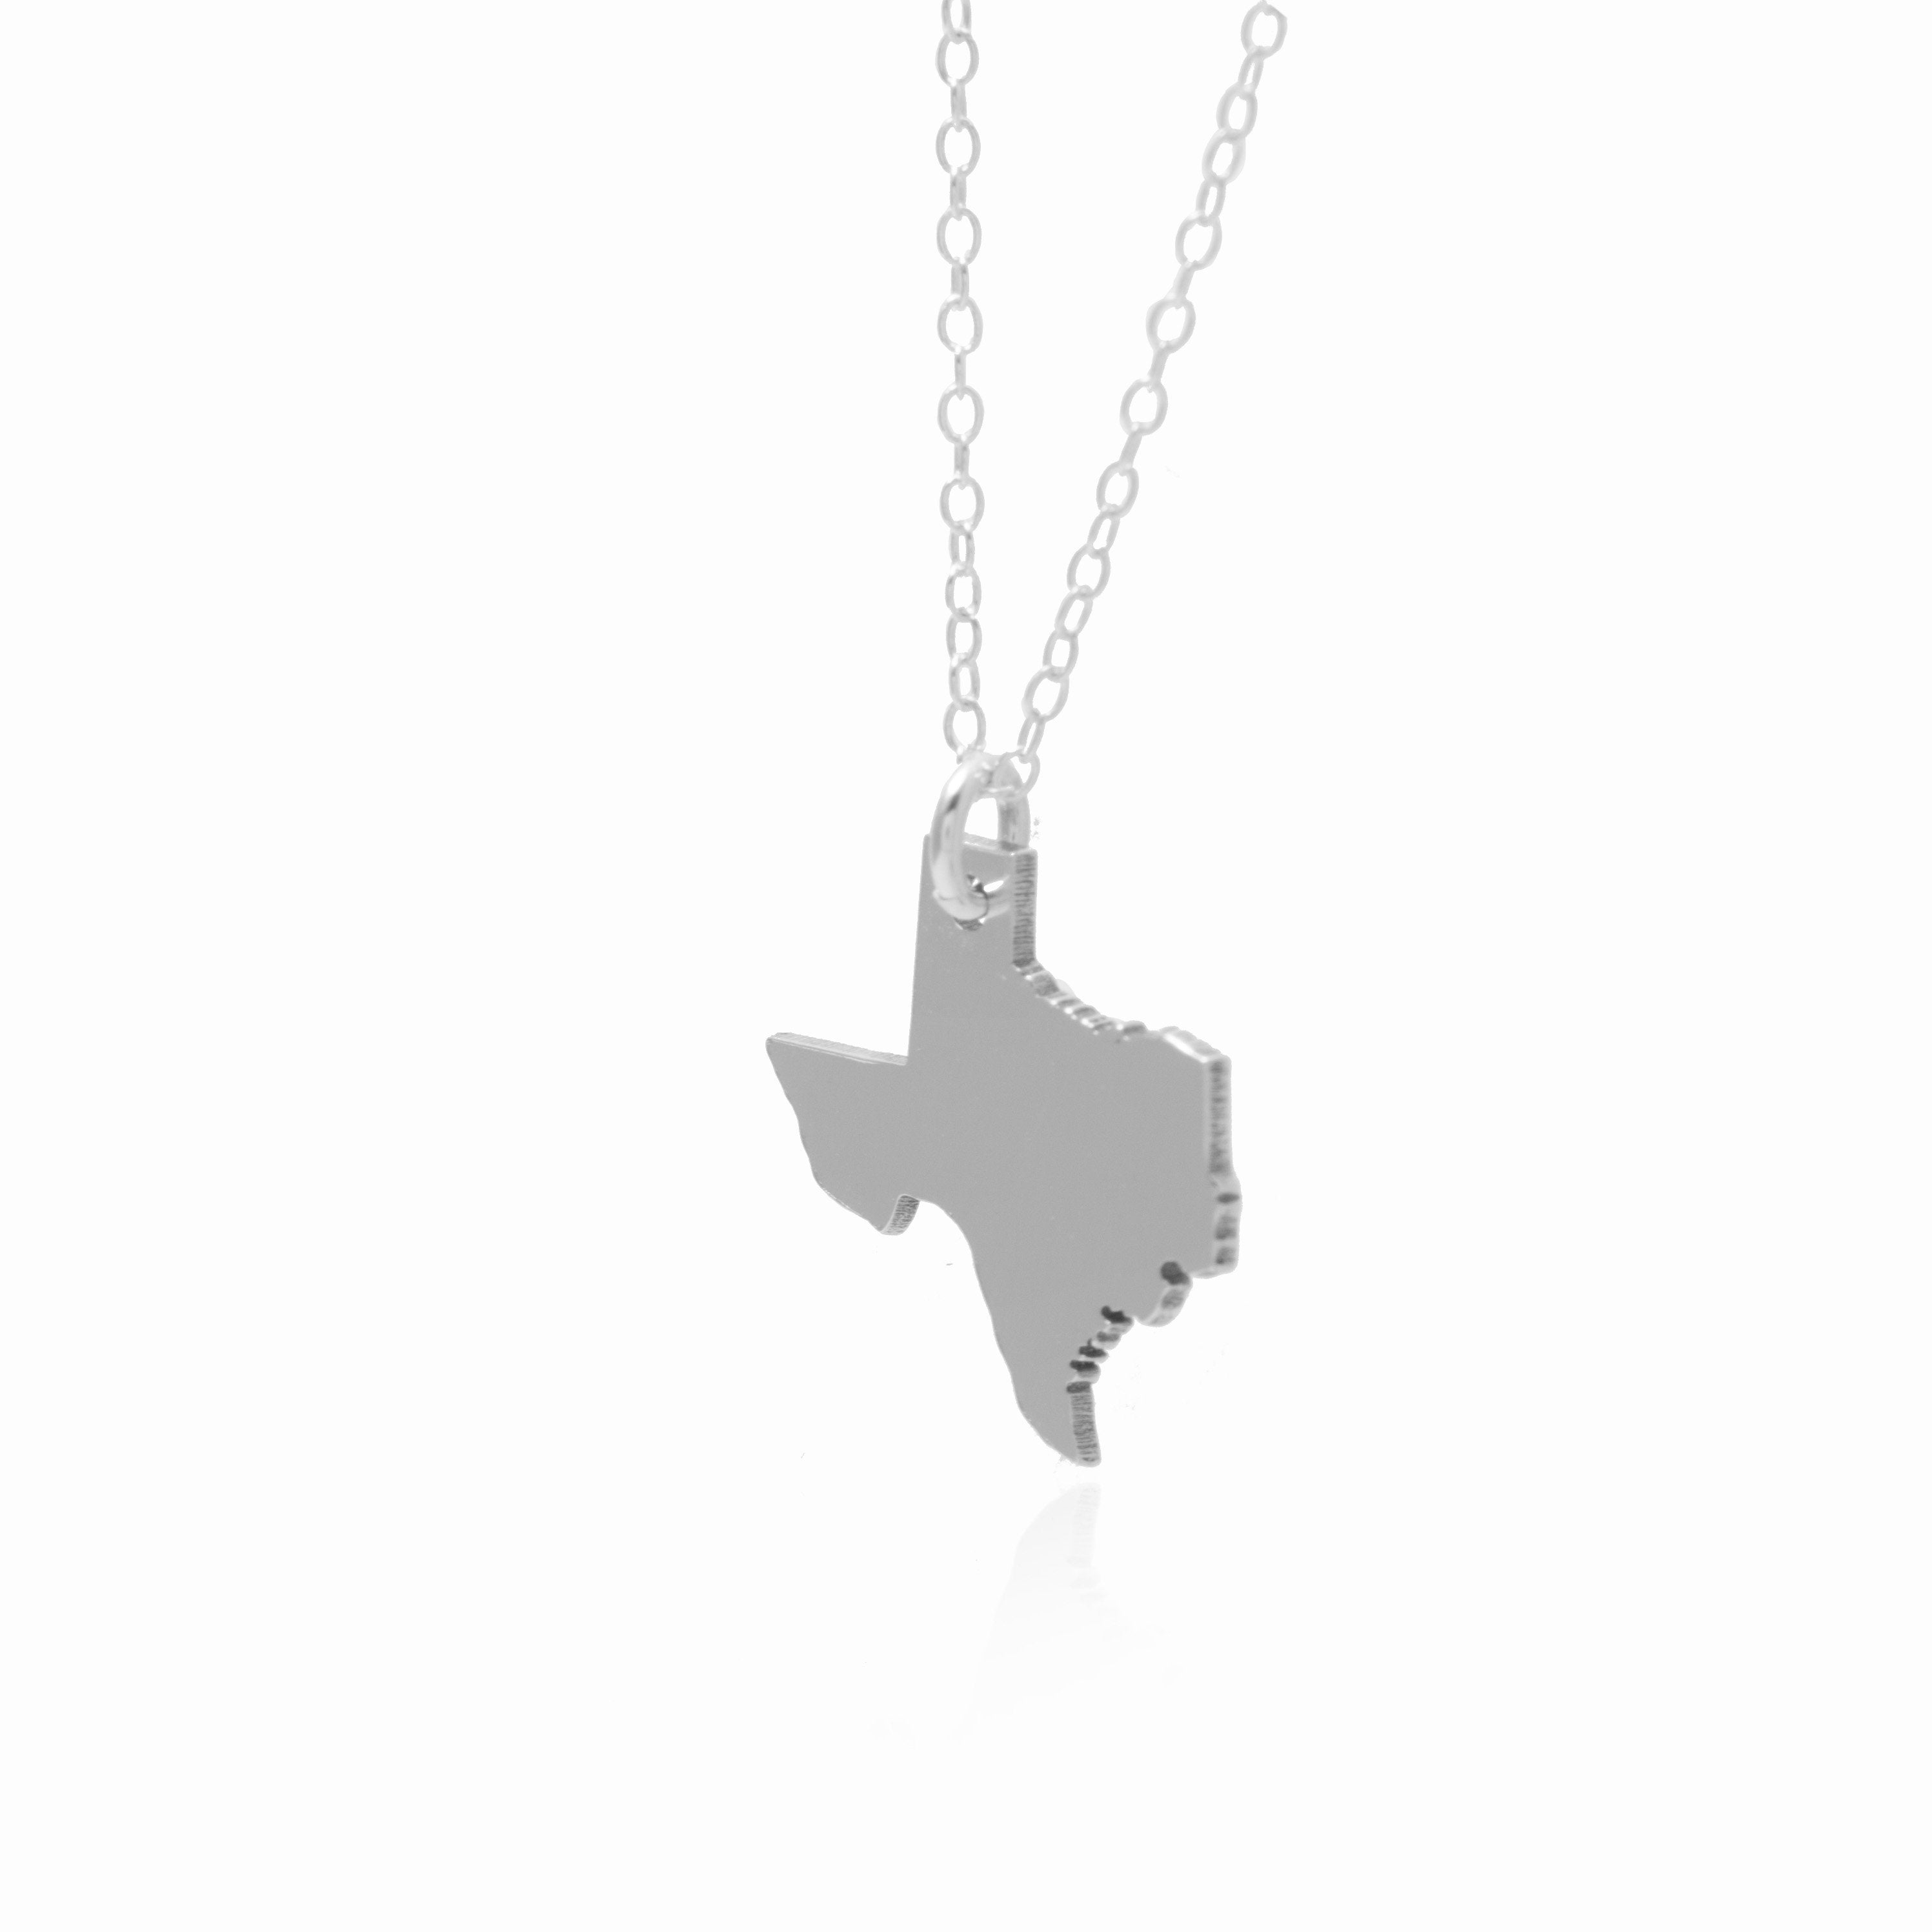 Texas Necklace Sterling Silver Texas Shaped Jewelry